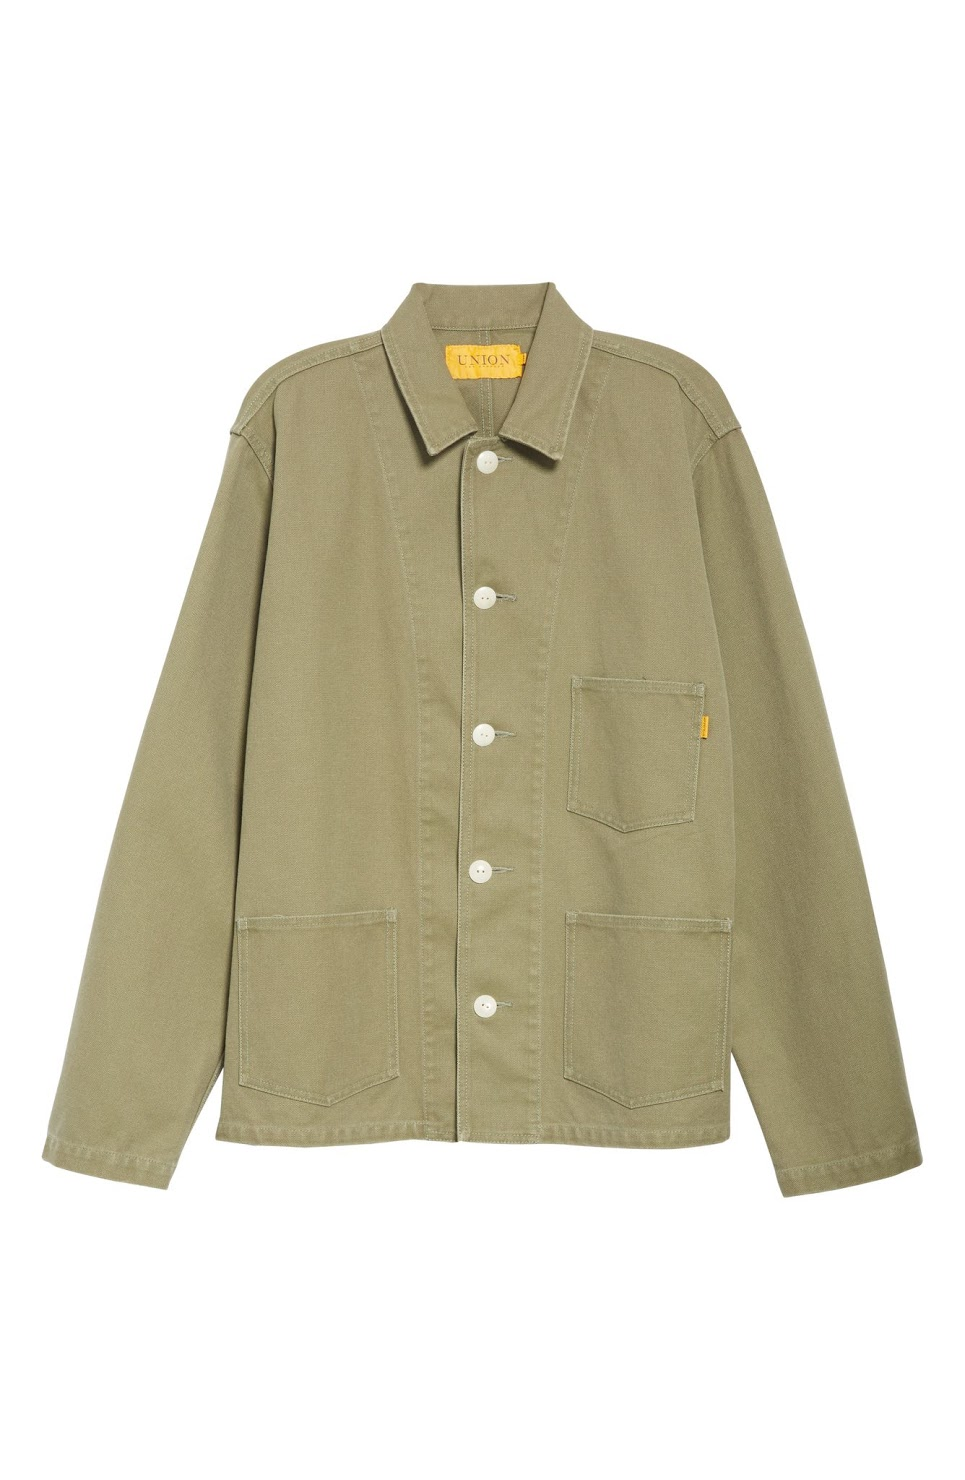 Union_Chore Coat_Olive_$280.jpeg